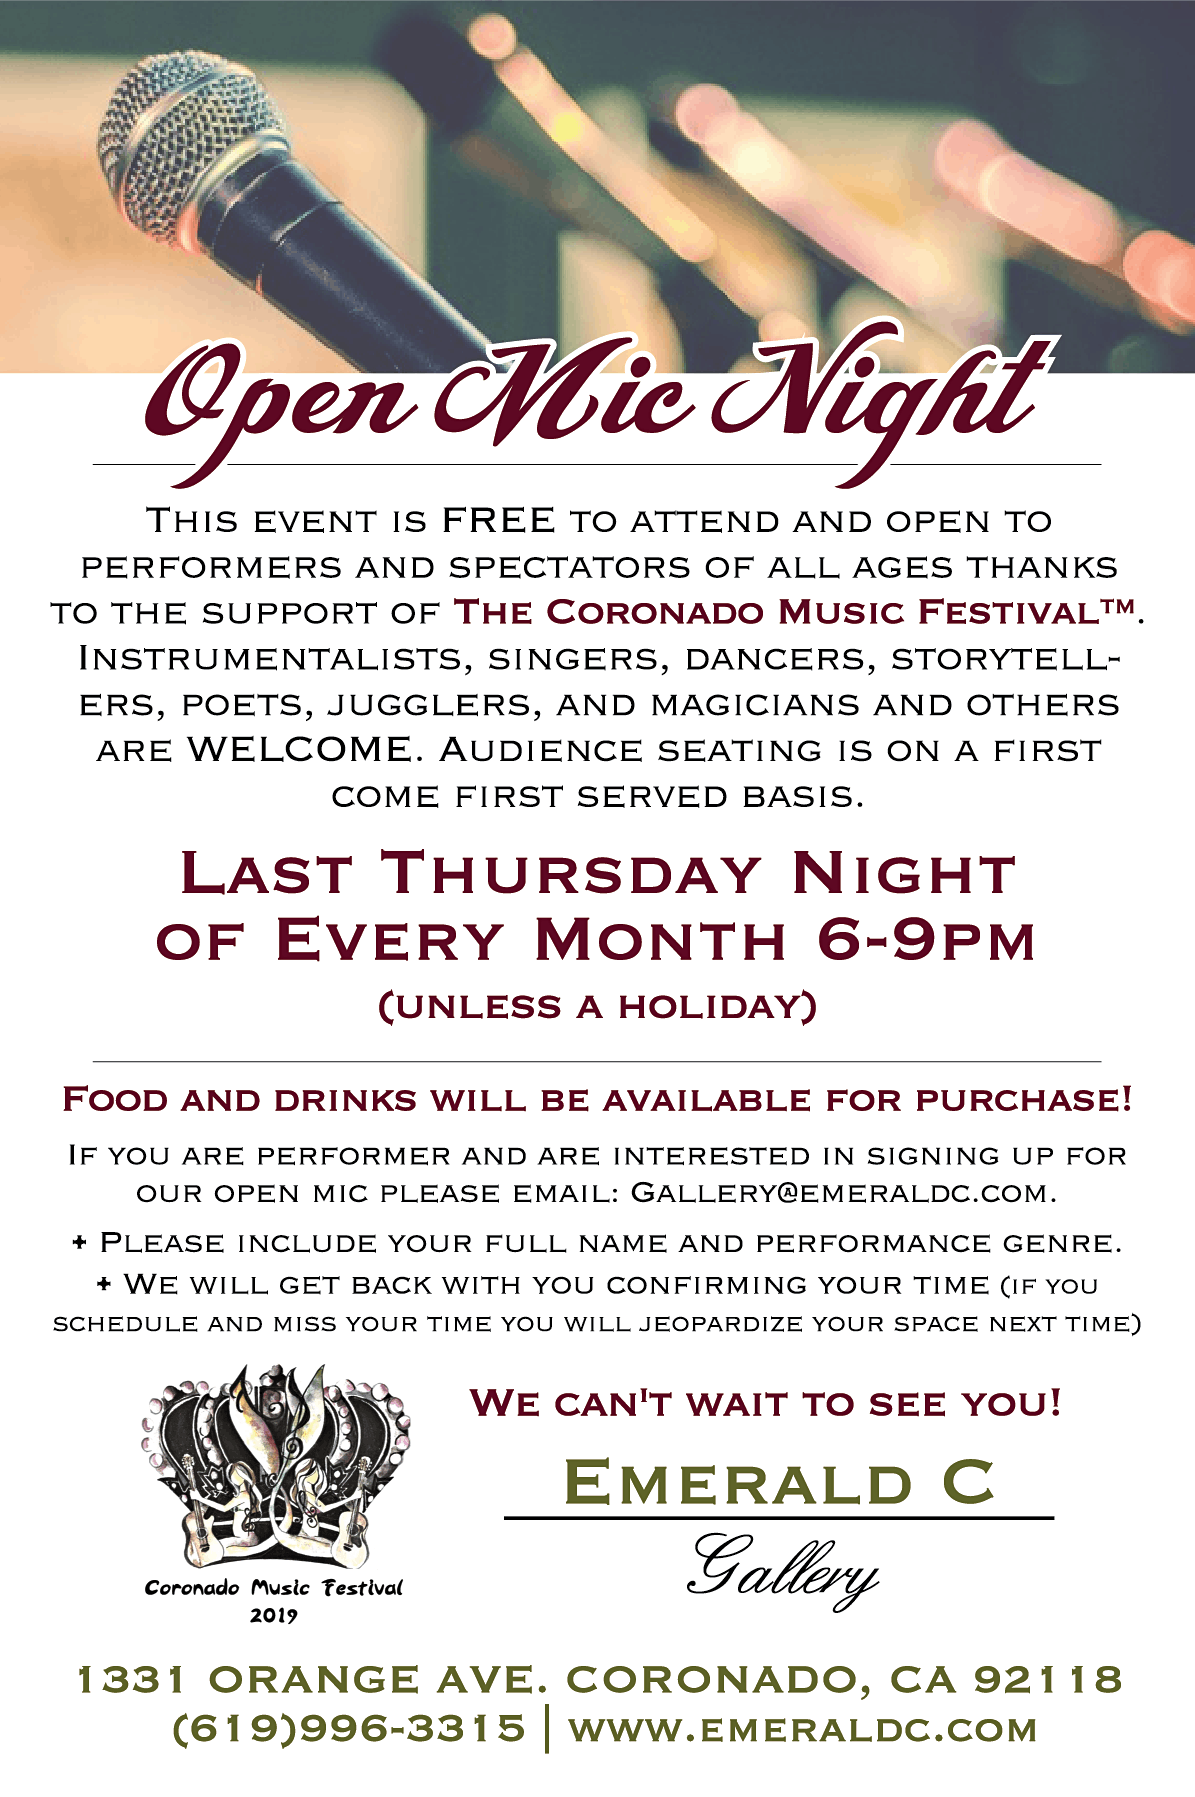 Open Mic Night - Fundraiser for the Coronado Music & Arts Festival